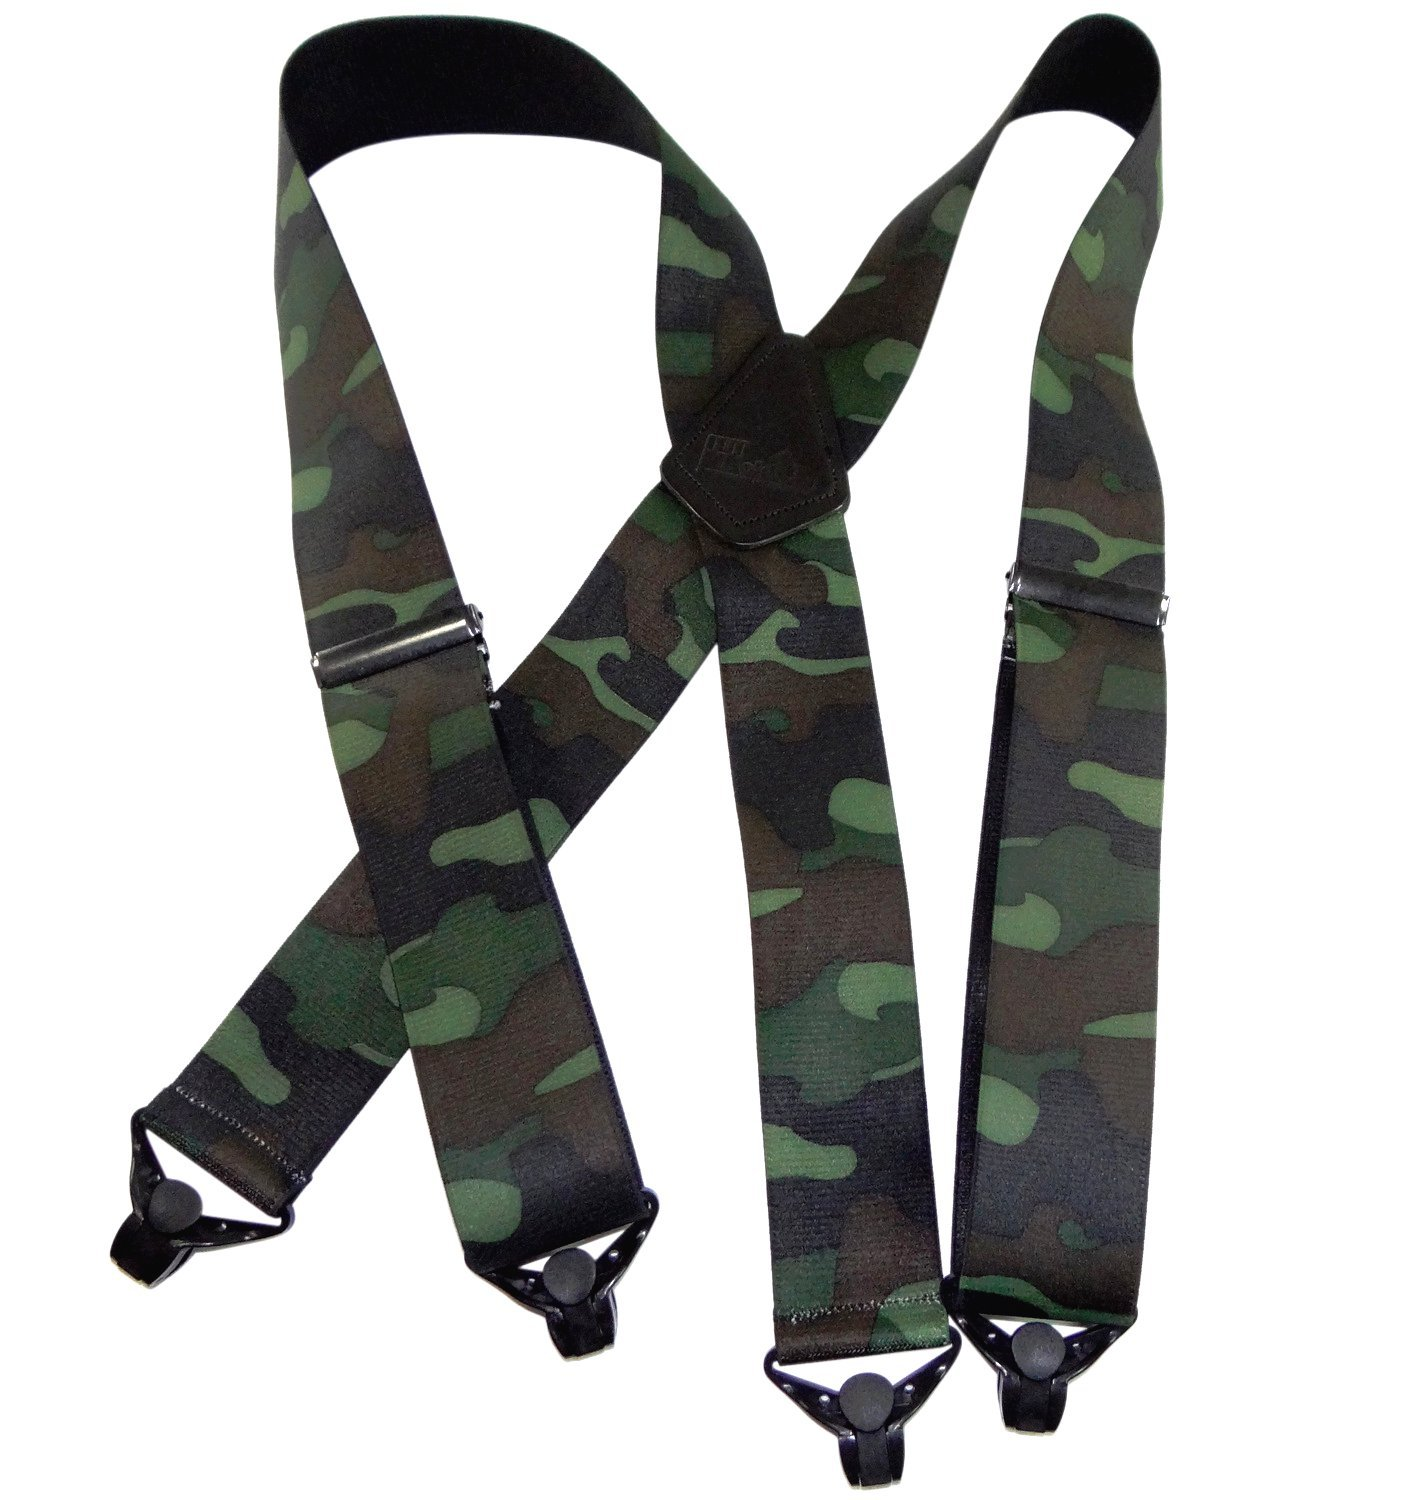 Hold-Up Brand Woodland Camouflage Hunting Suspenders with Patented Gripper Clasps